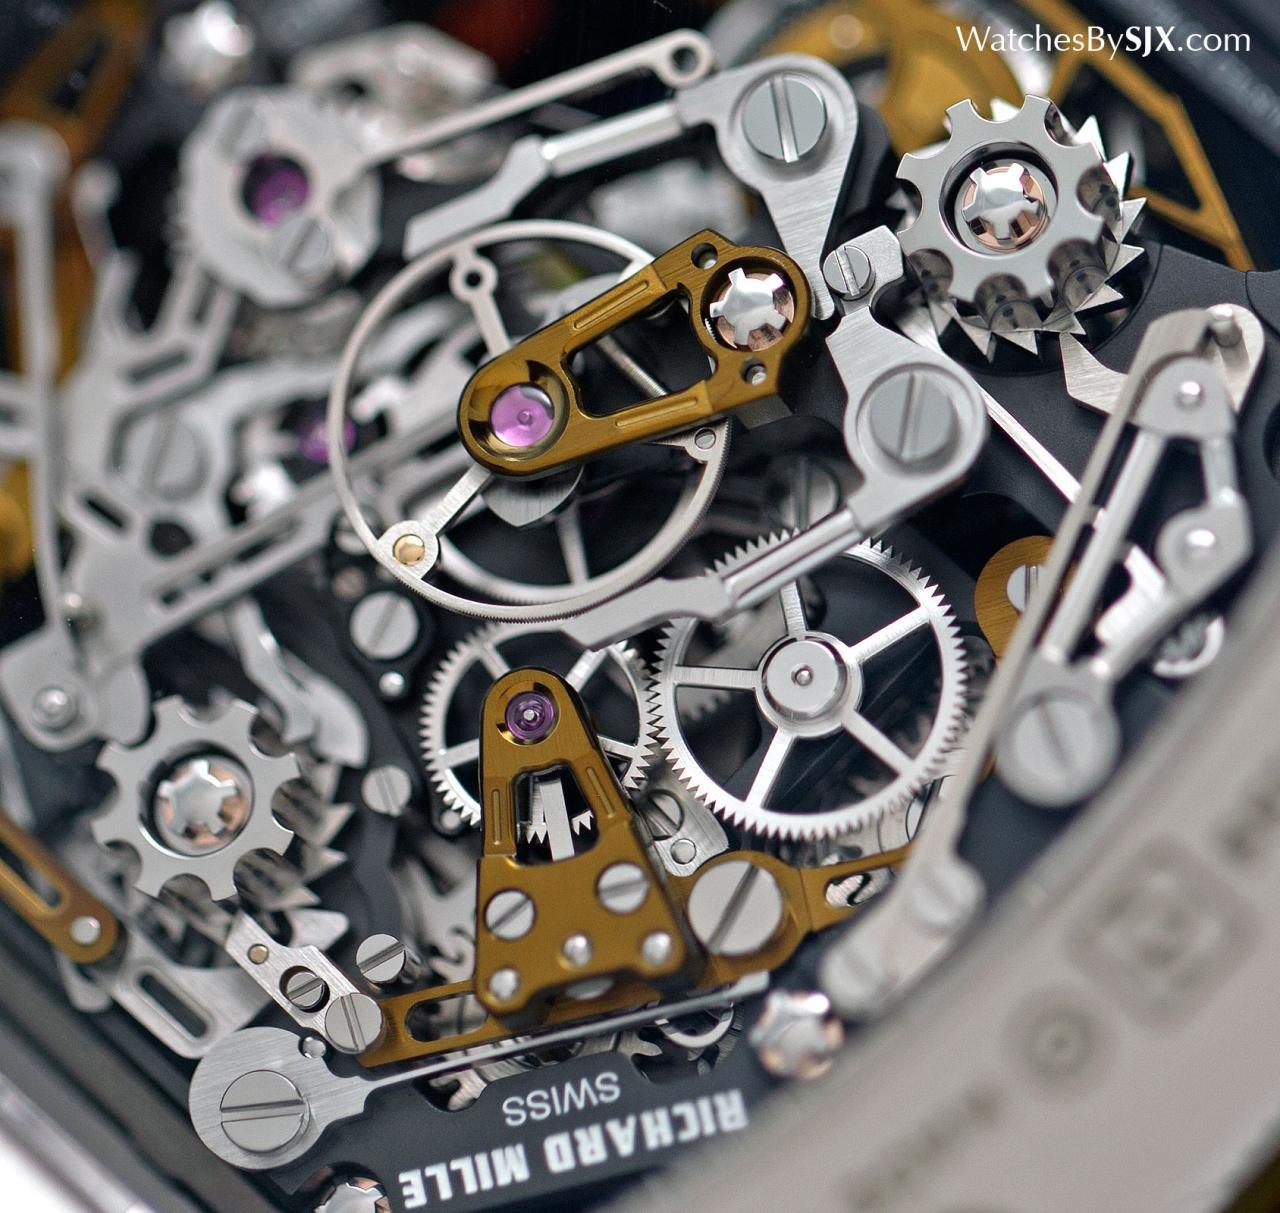 Richard Mille RM 50-02 ACJ Tourbillon Split Seconds Chronograph 5